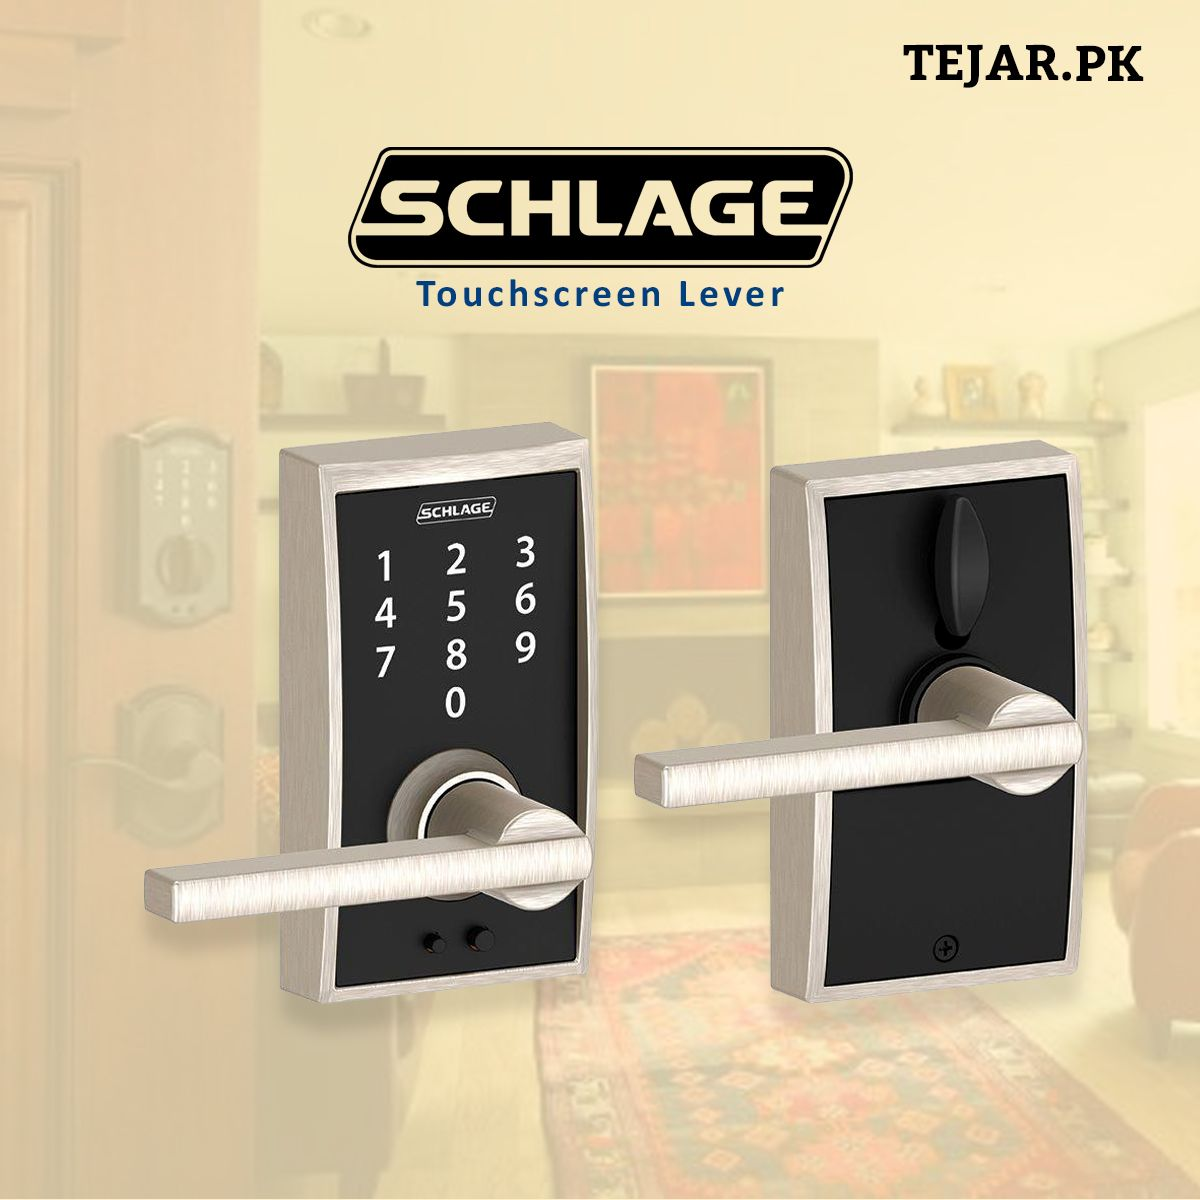 Schlage Touch Keyless Touchscreen Lever with Century Trim